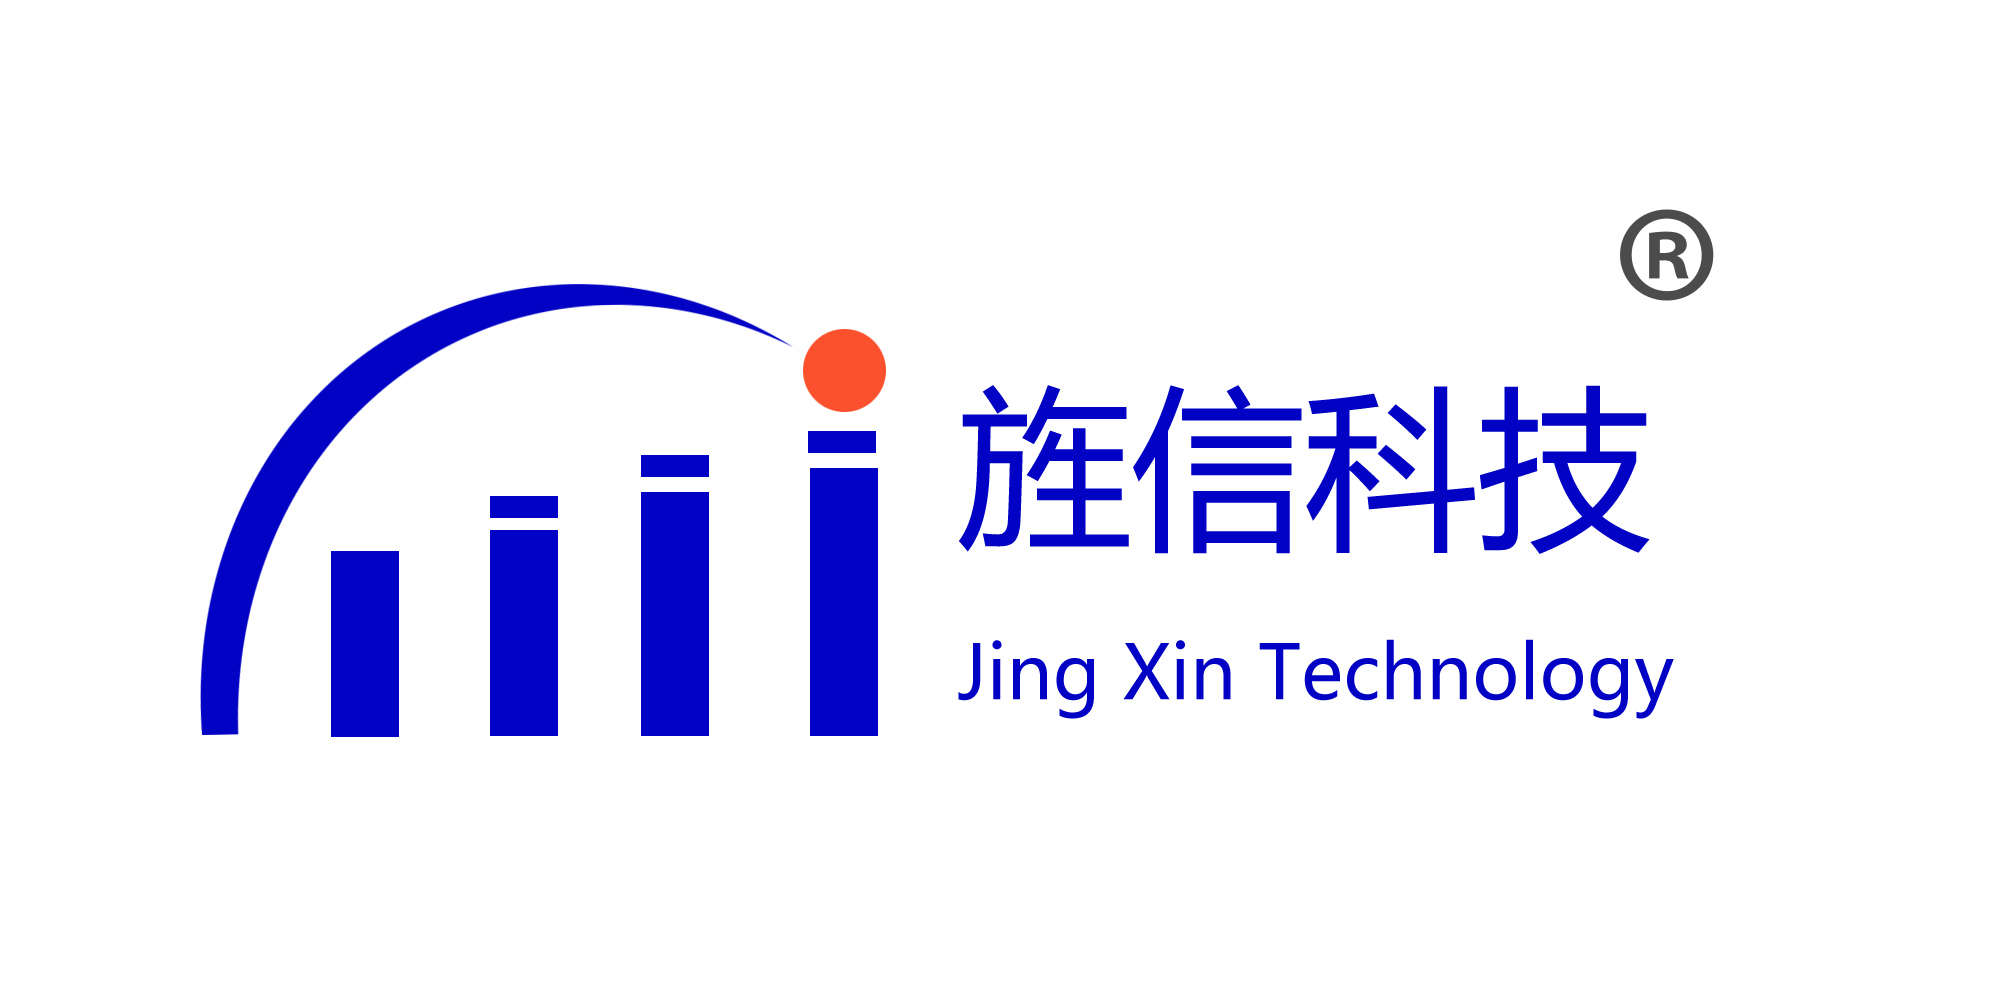 CHENGDU JING XIN MICROWAVE TECHNOLOGY CO., LTD